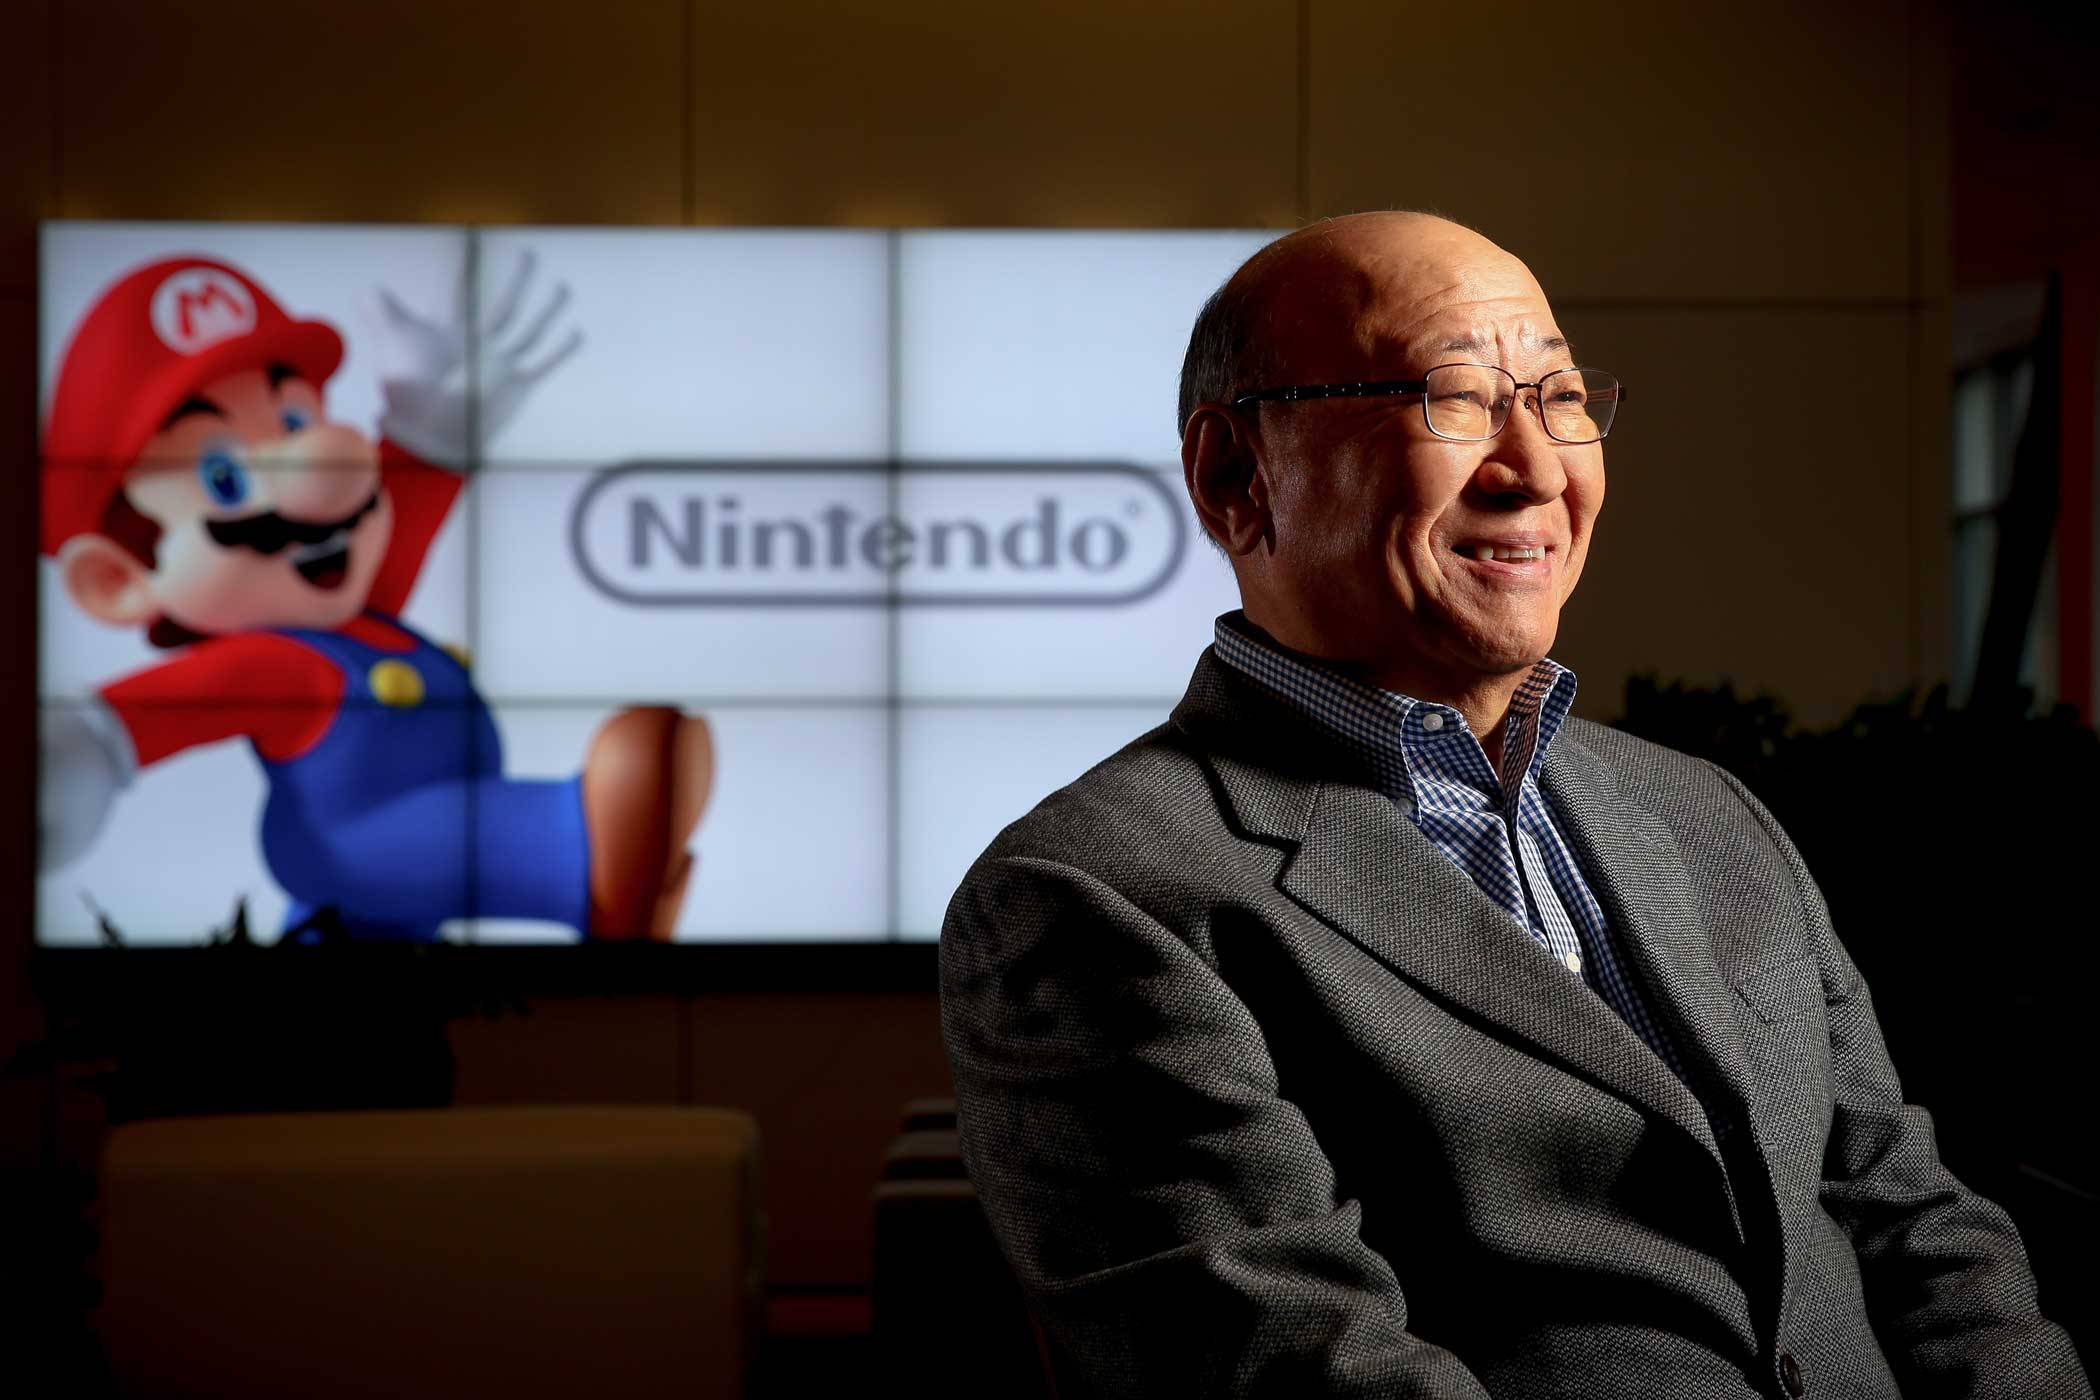 Is Tatsumi Kimishima doing a good job?